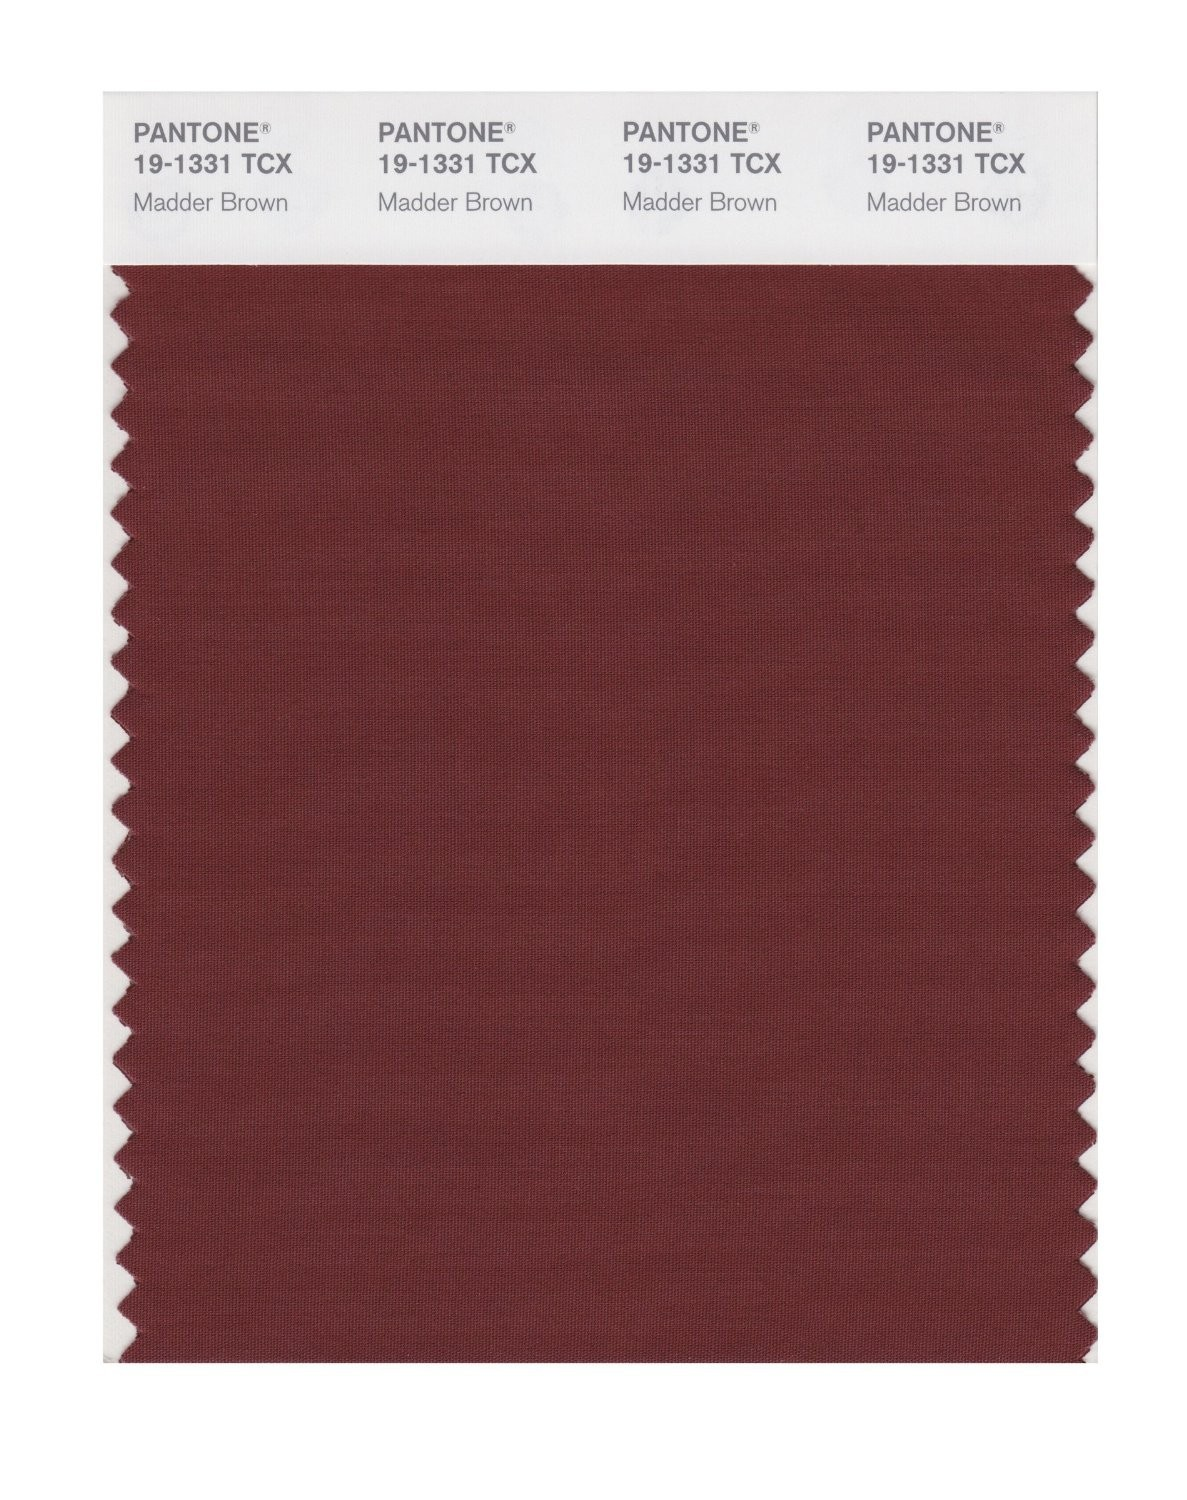 Pantone 19-1331 TCX Swatch Card Madder Brown